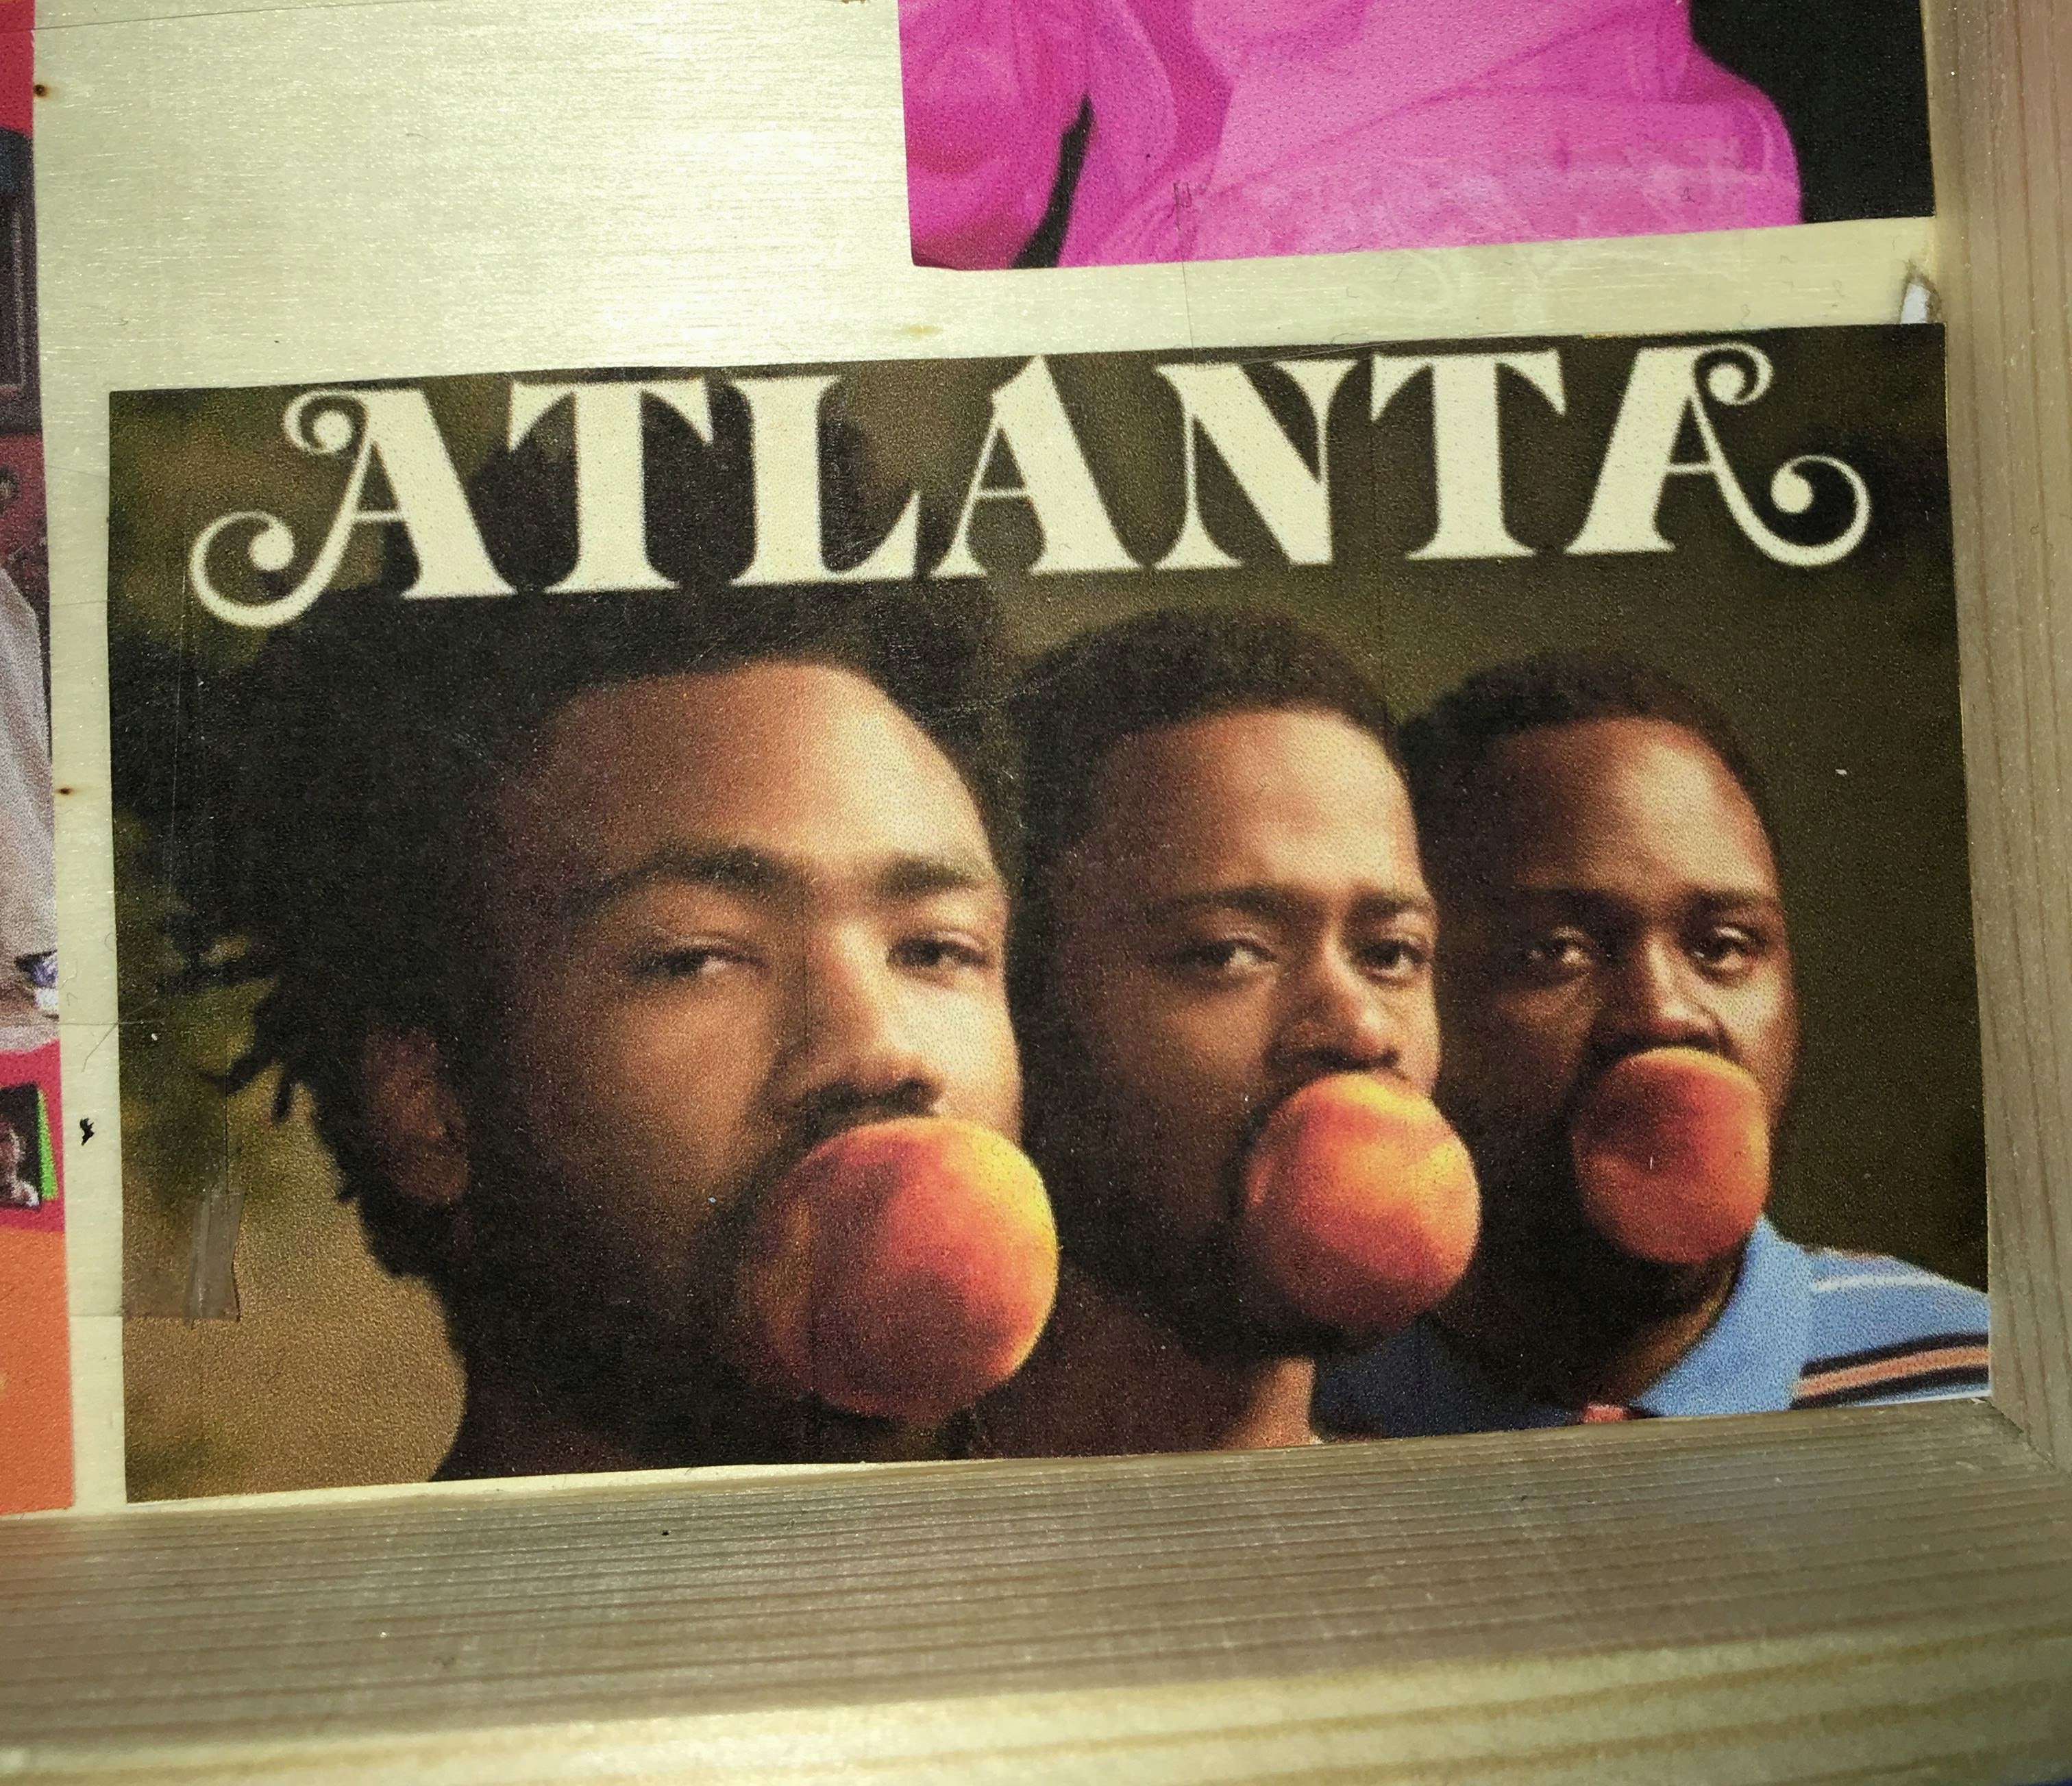 This image is of the television series 'Atlanta'(2016-present). I placed this in the box because it's not only a favorite show of mine, but the creator of the show, Donald Glover aka Childish Gambino, is an example of how hip hop has been present in other forms of media, such as television.